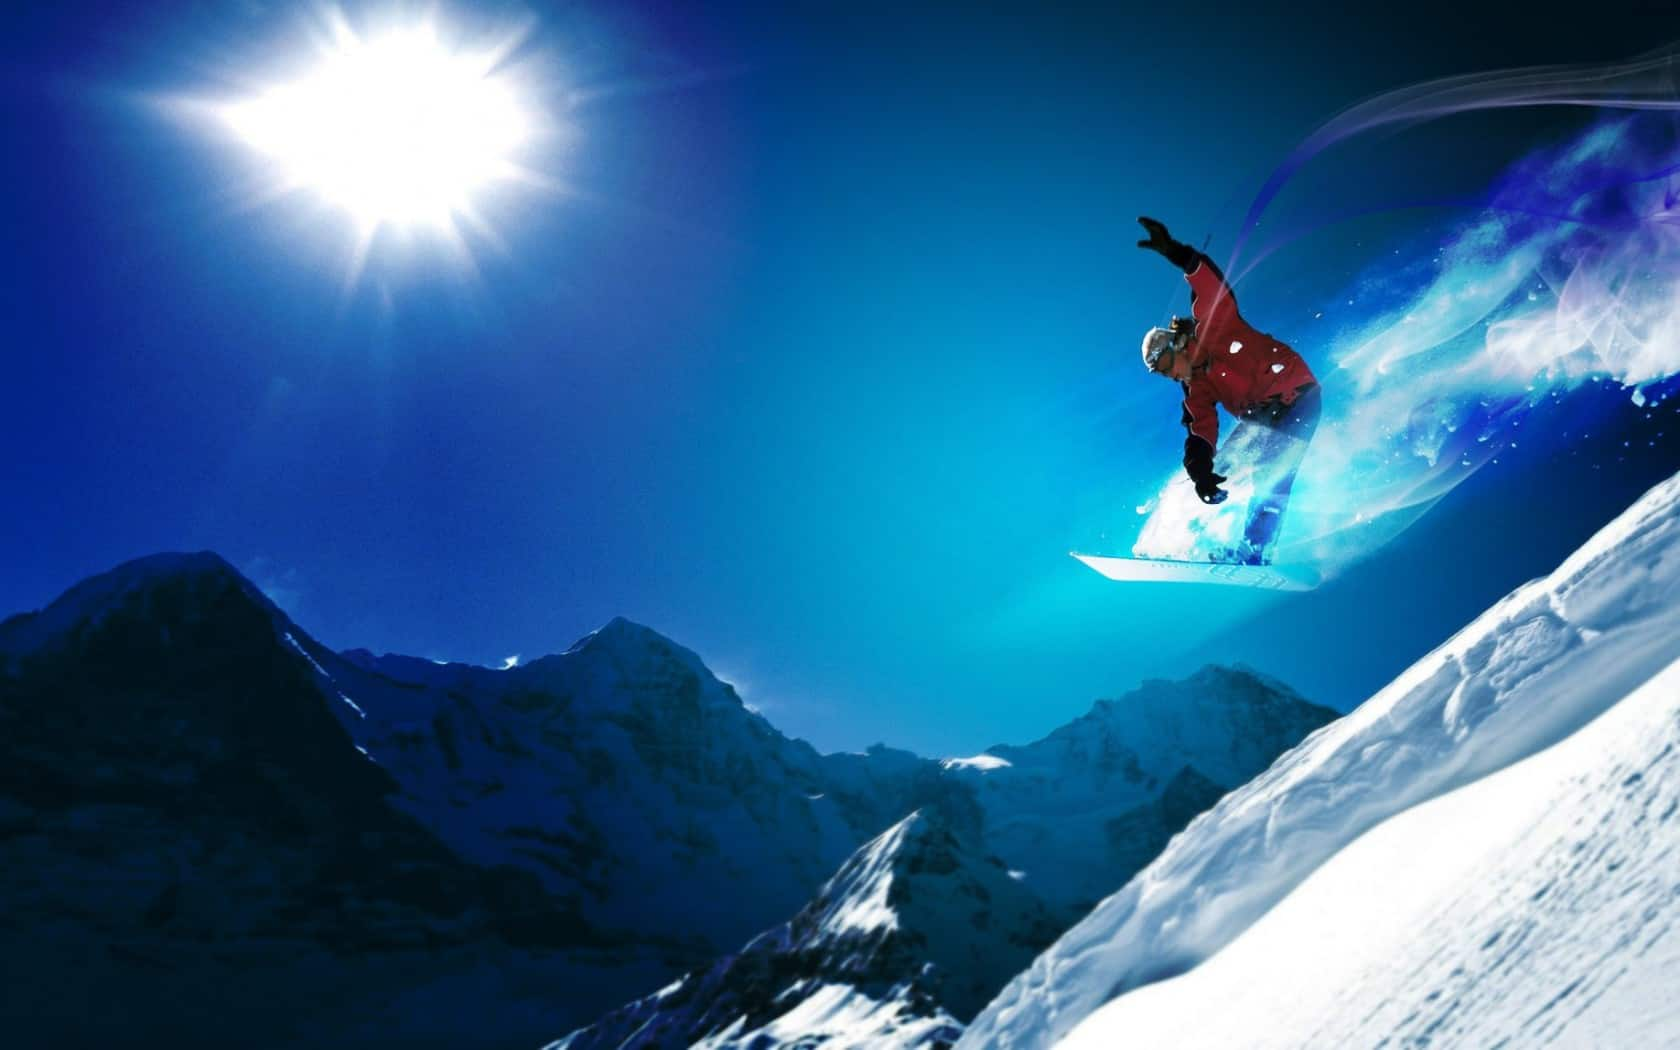 8589130432592-snowboard-wallpaper-hd